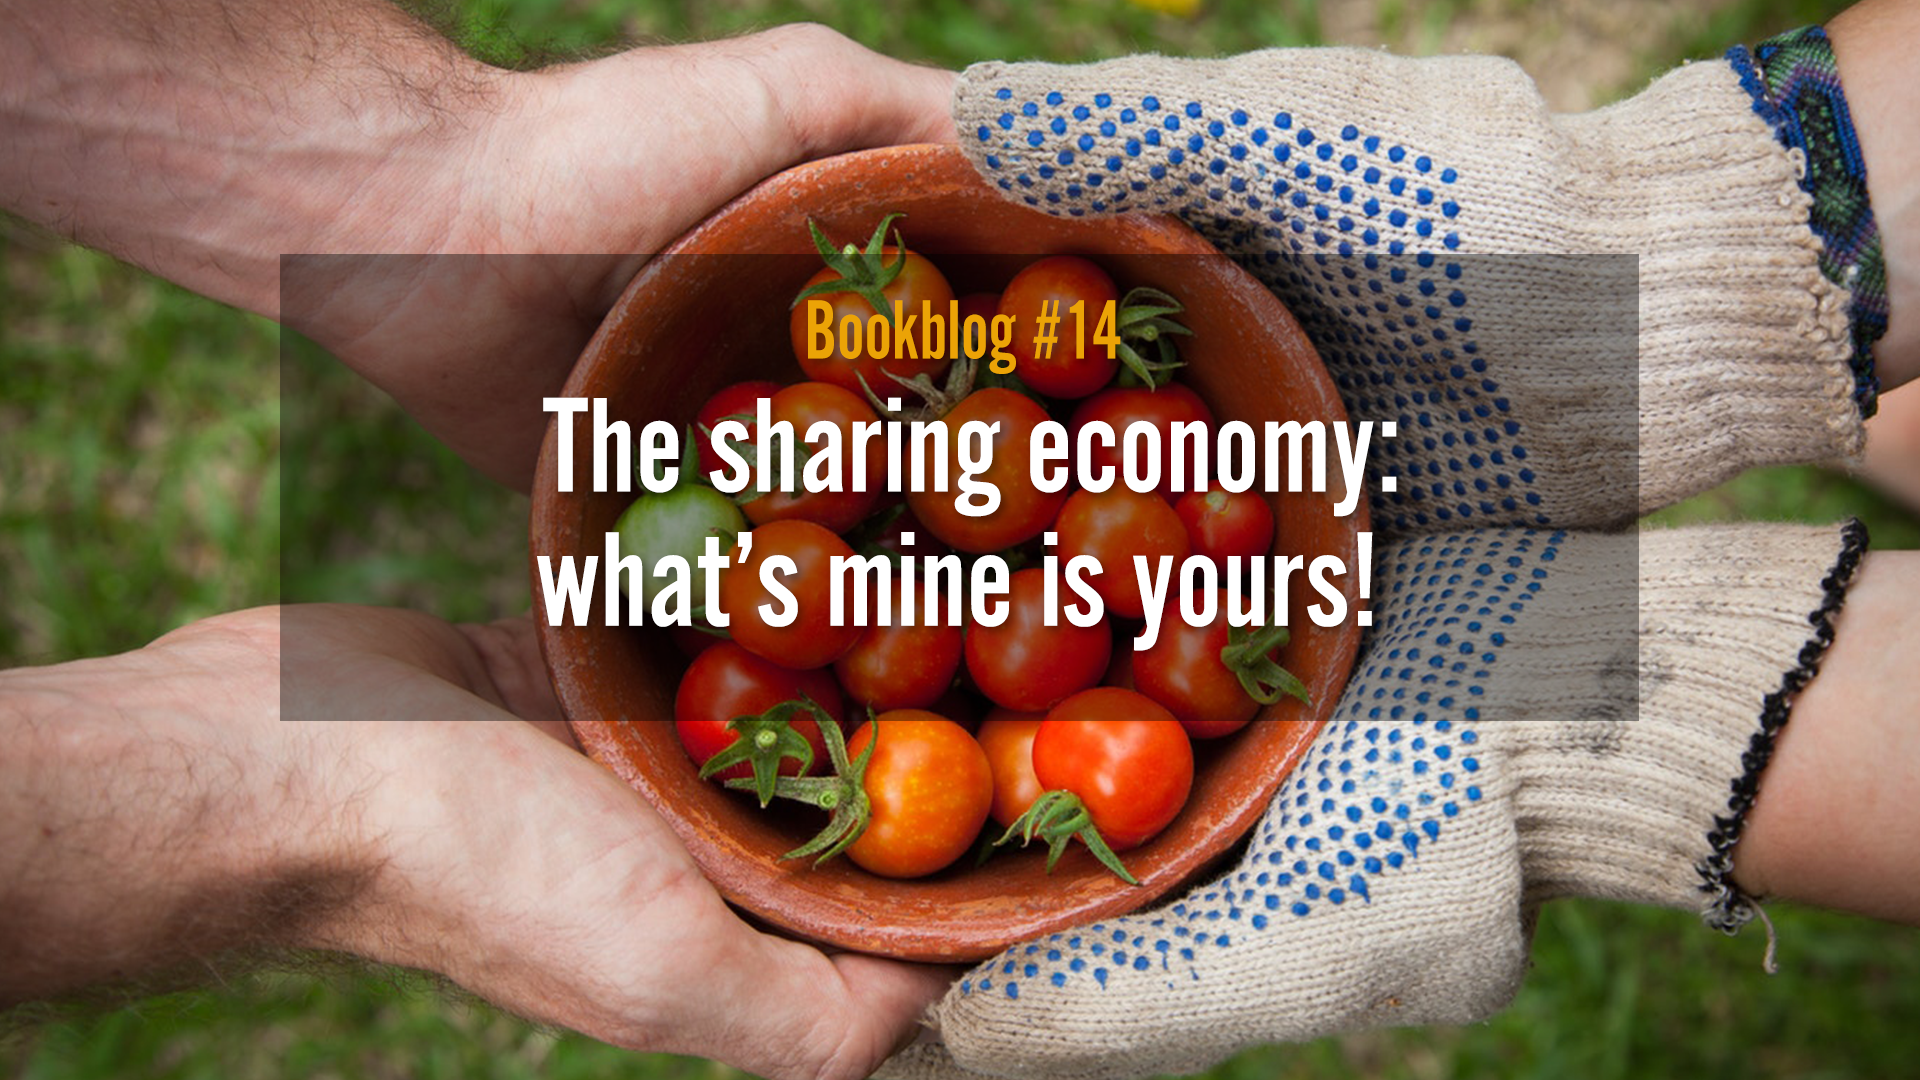 The sharing economy: what's mine is yours!